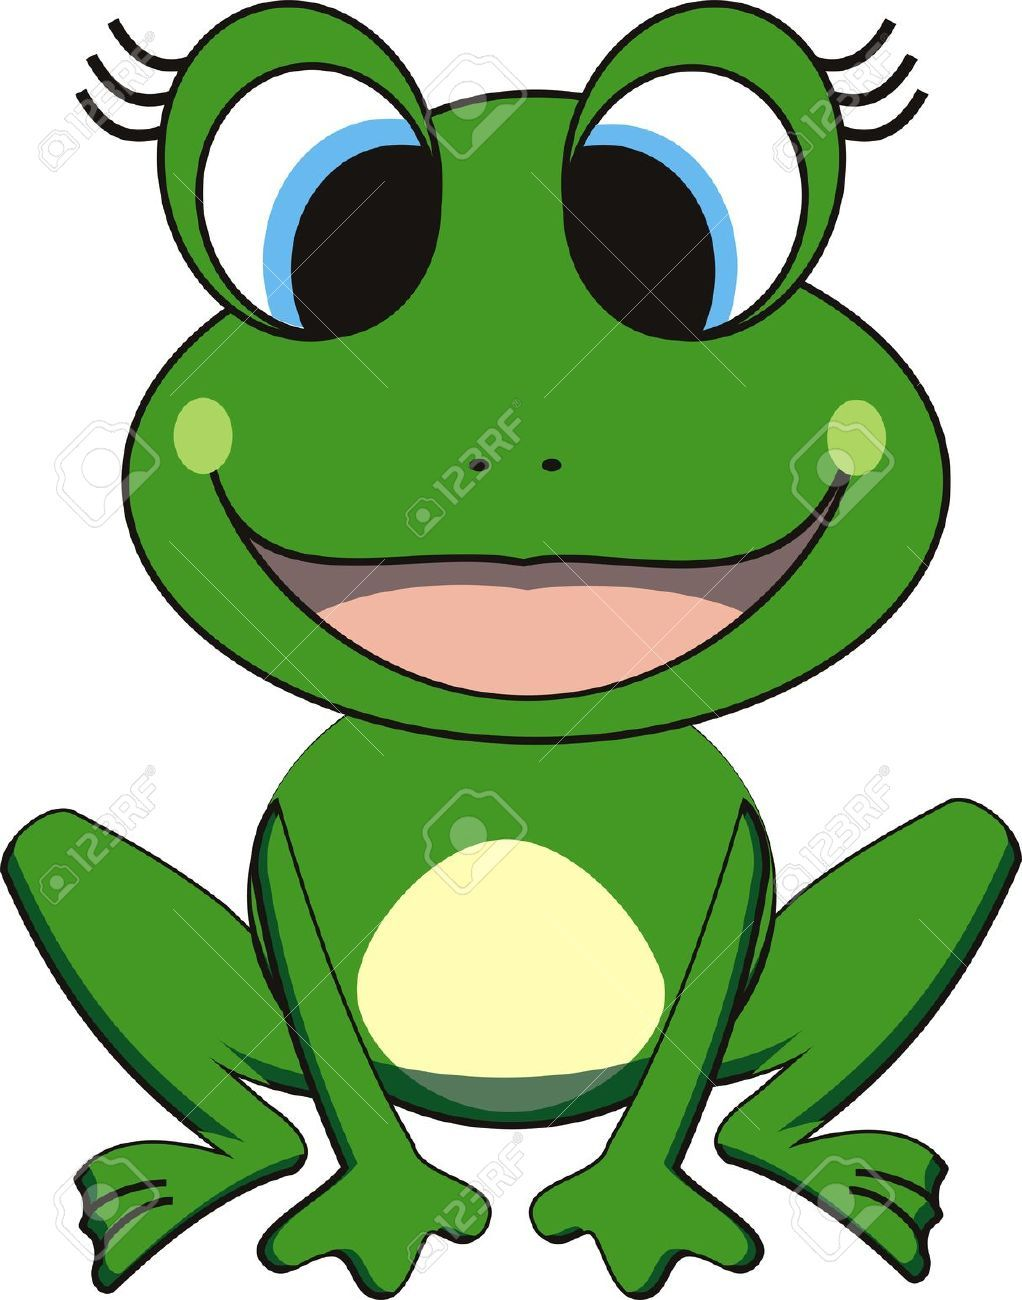 small resolution of vector illustration of happy frog cliparts vector v stock h nh nh minh h a mi n ph b n quy n image 5156383